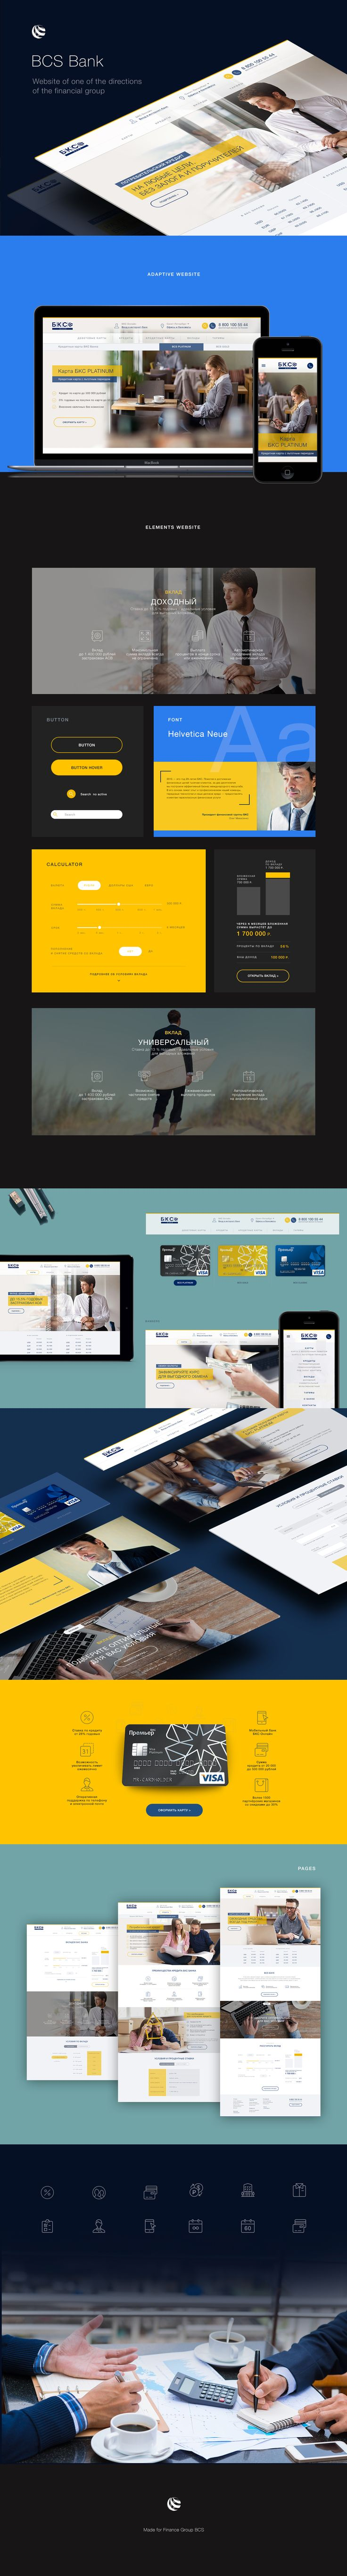 BCS Bank on Behance